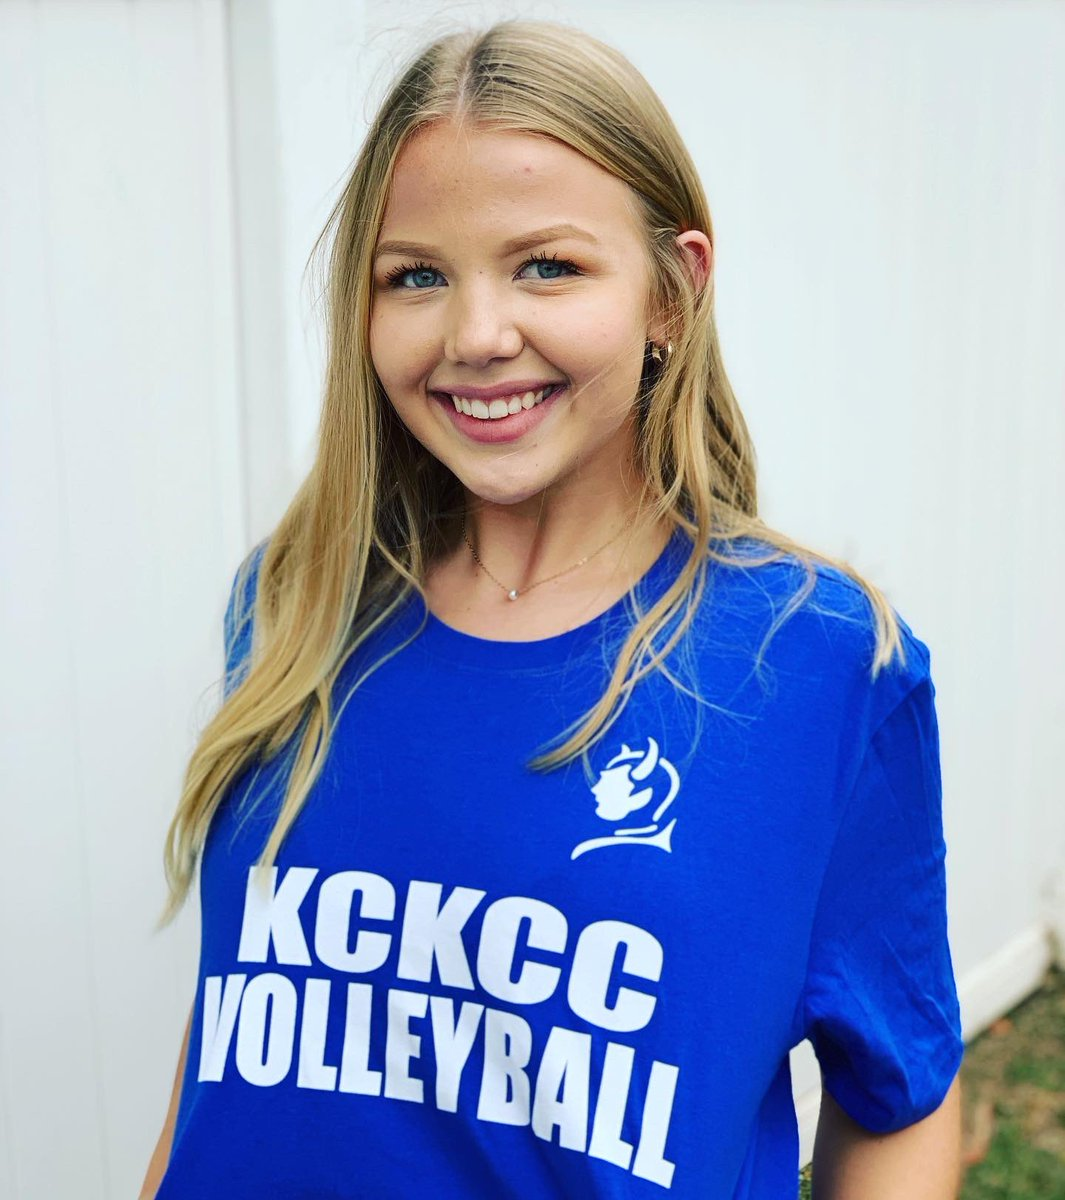 KCKCC Volleyball on Twitter: